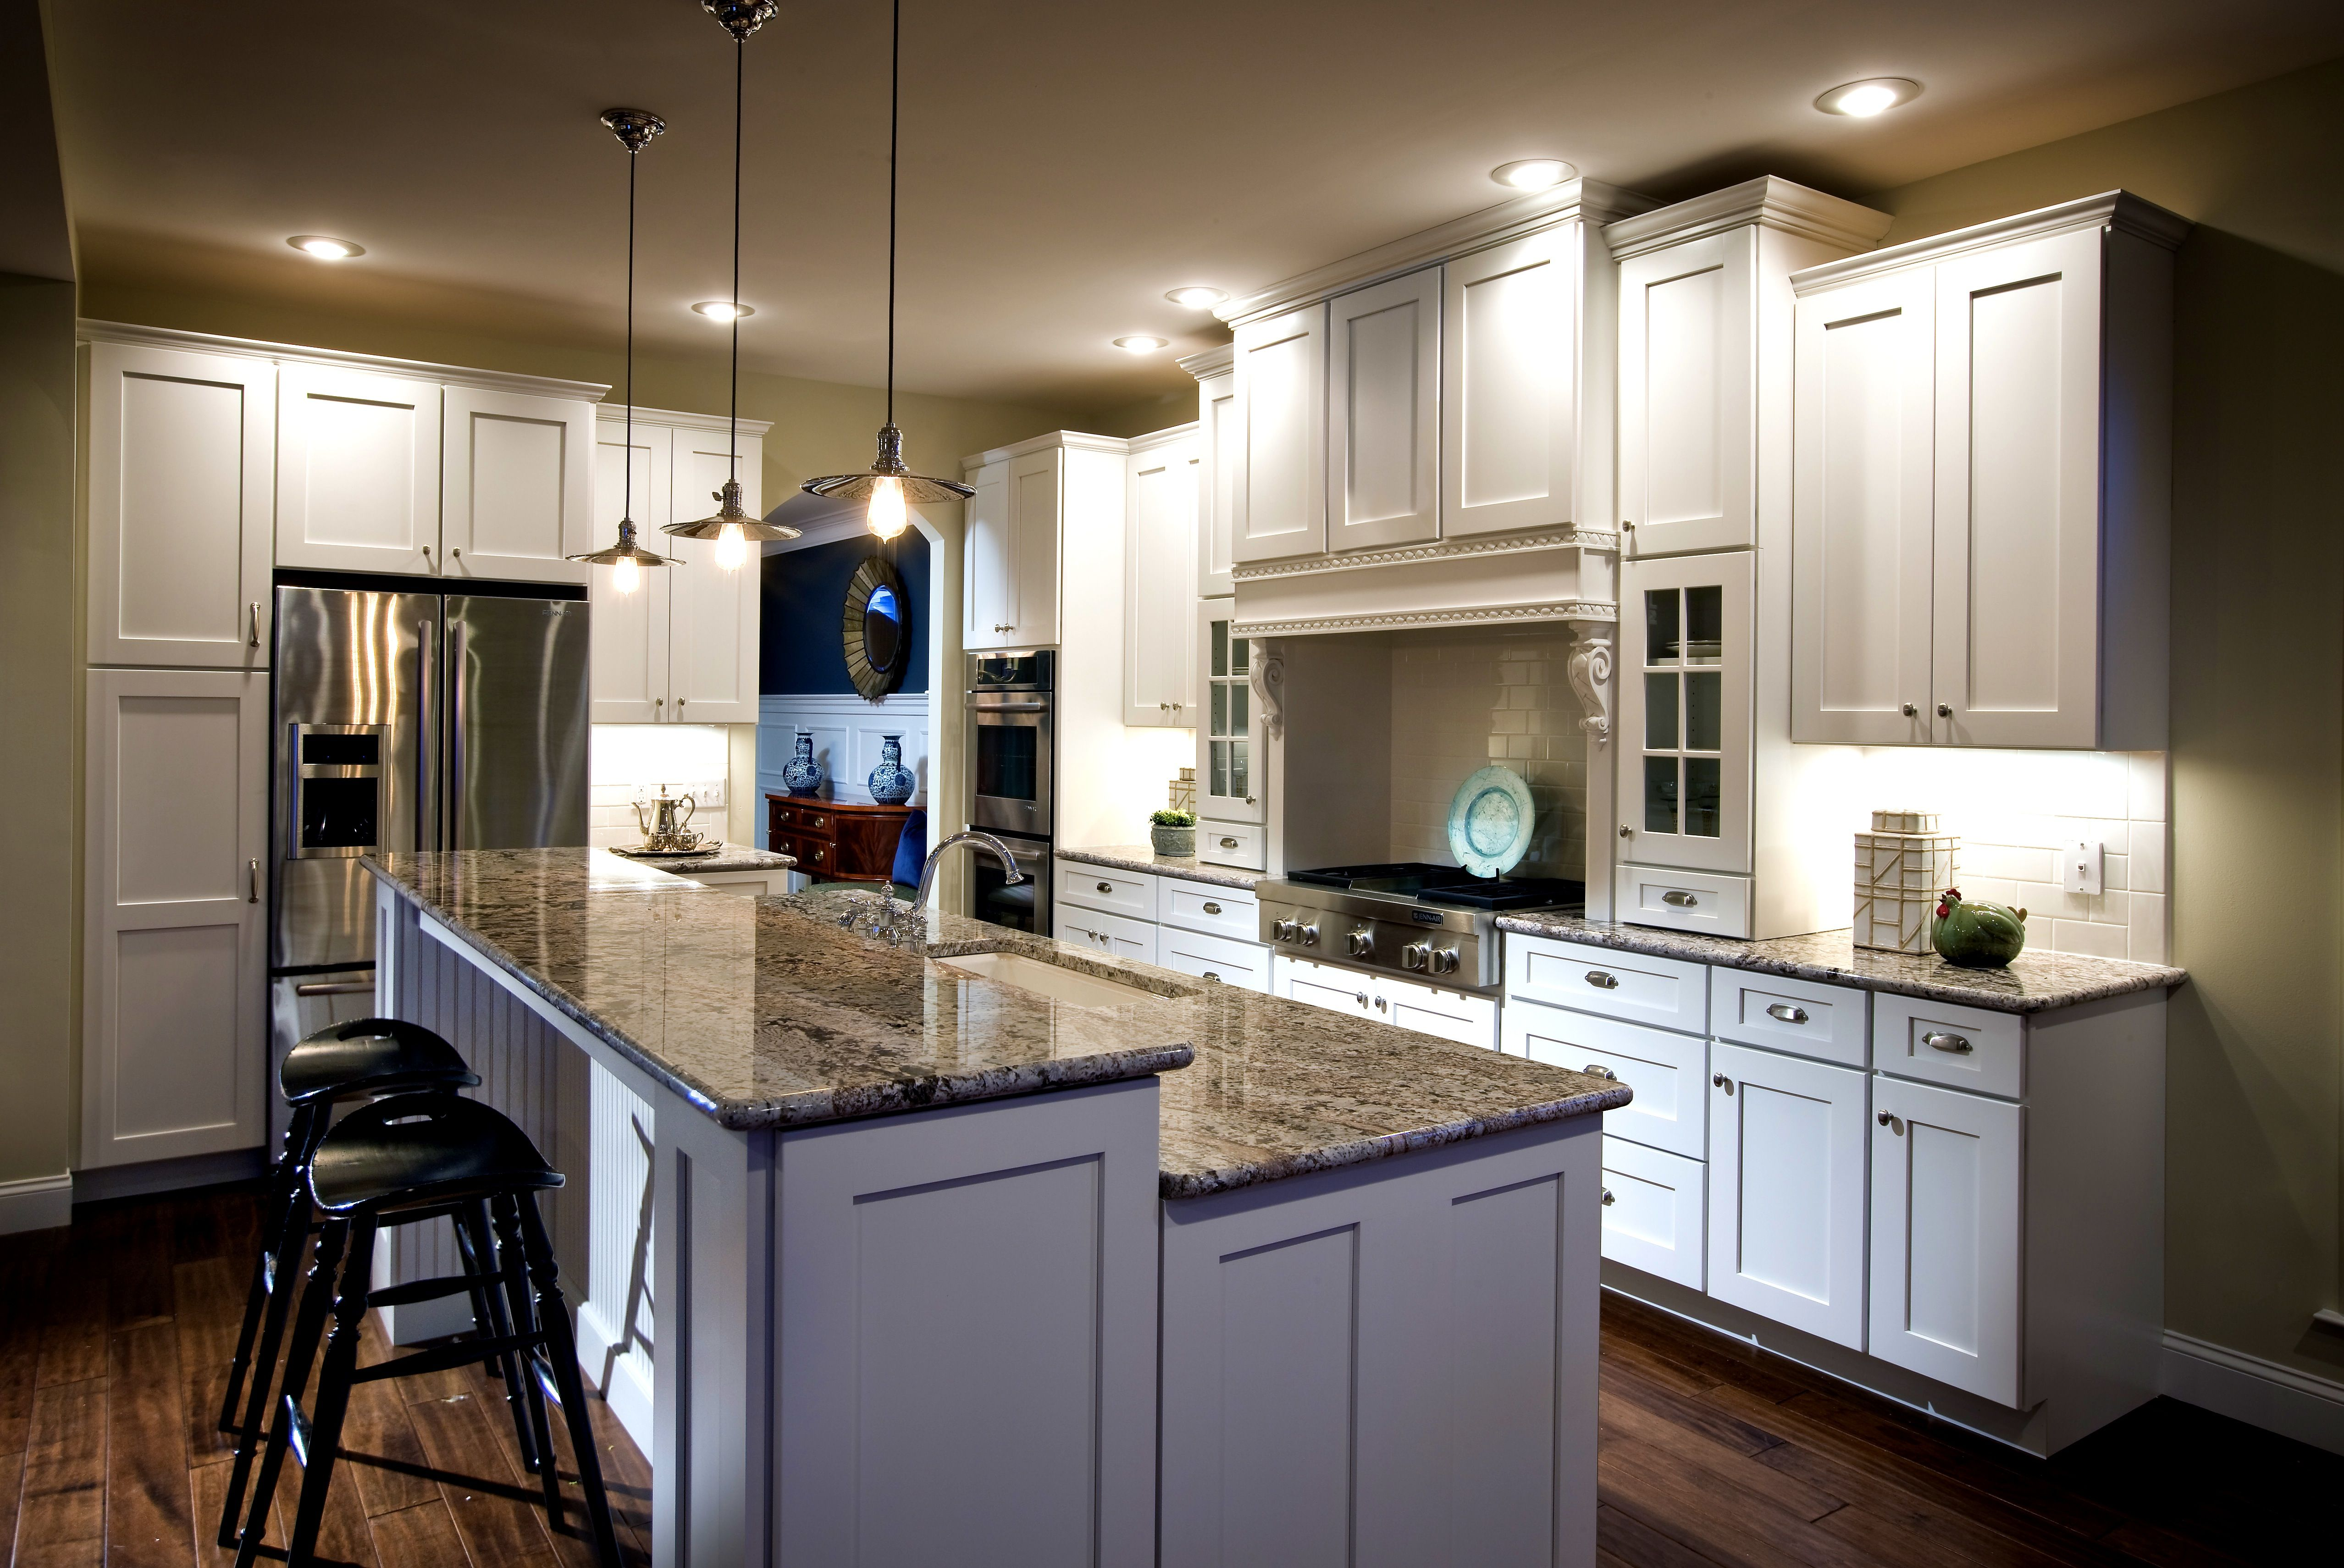 bathroom breathtaking colorful small kitchen island ideas seating and design islands layouts on kitchen island ideas small layout id=60795